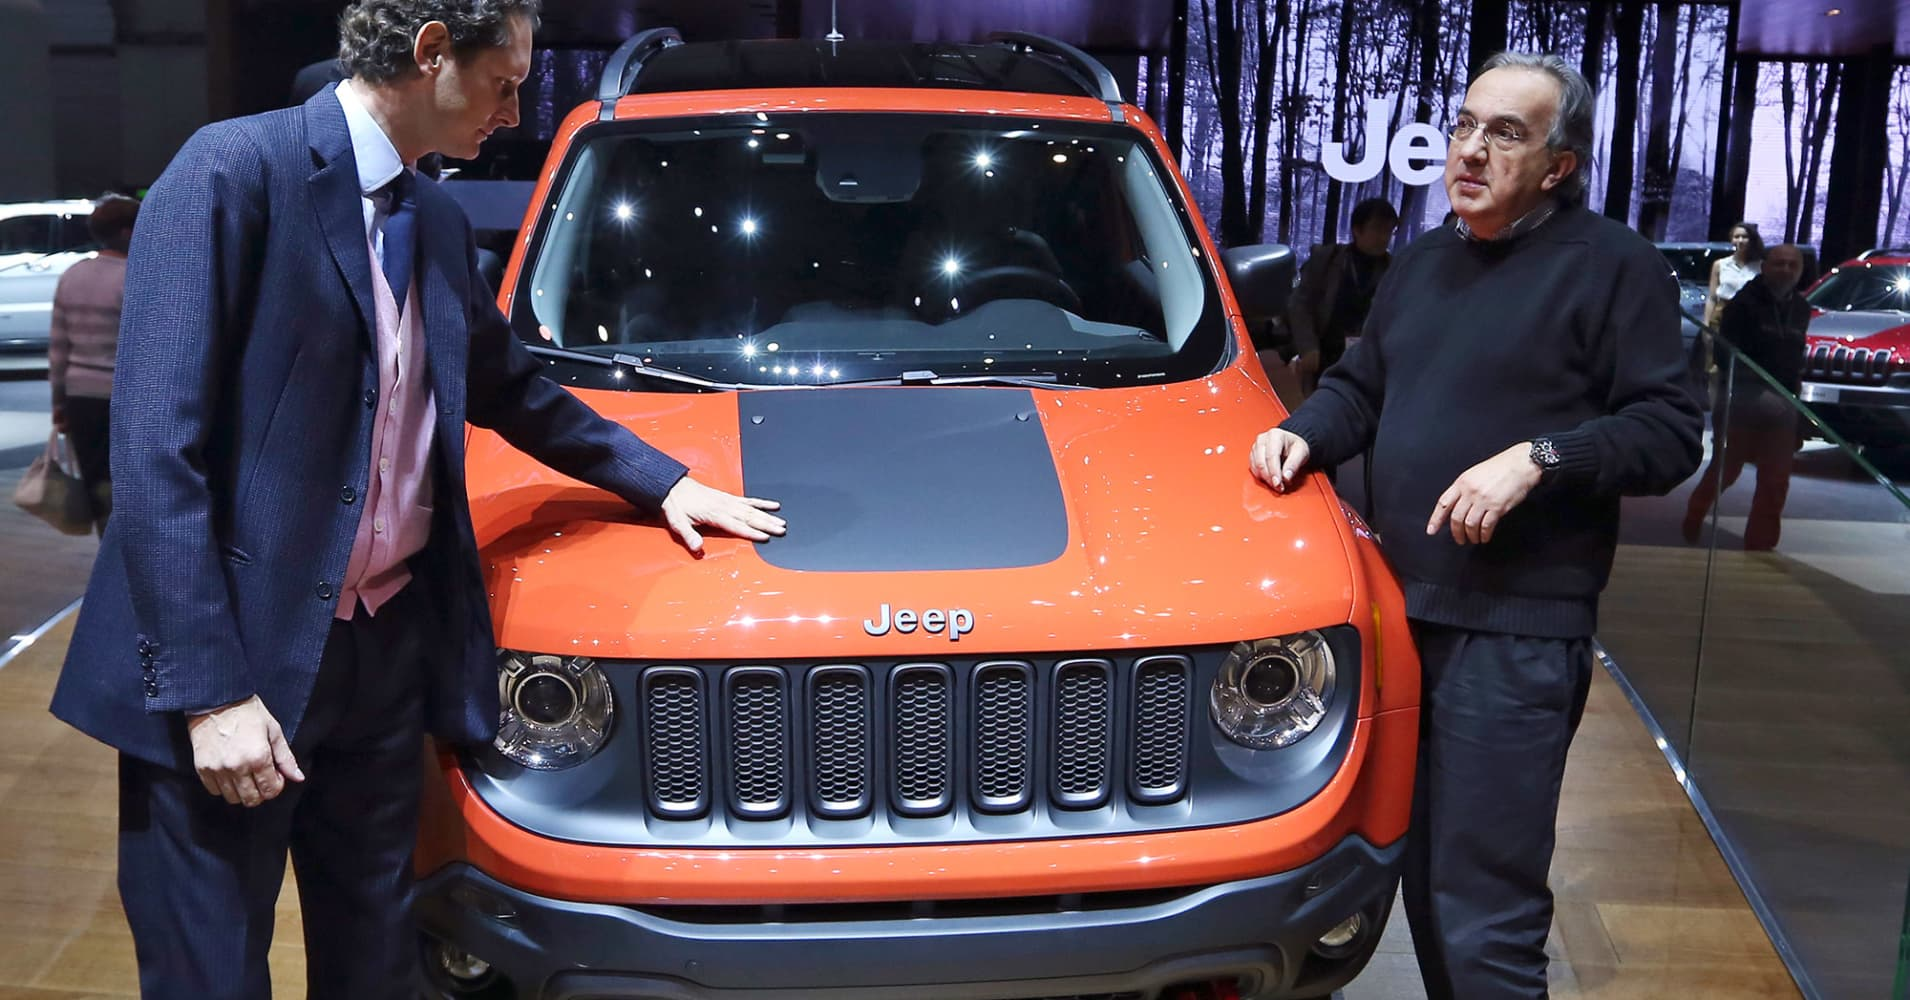 Fiat Chrysler CEO says Jeep, Ram are strong enough brands to follow in Ferrari's footsteps